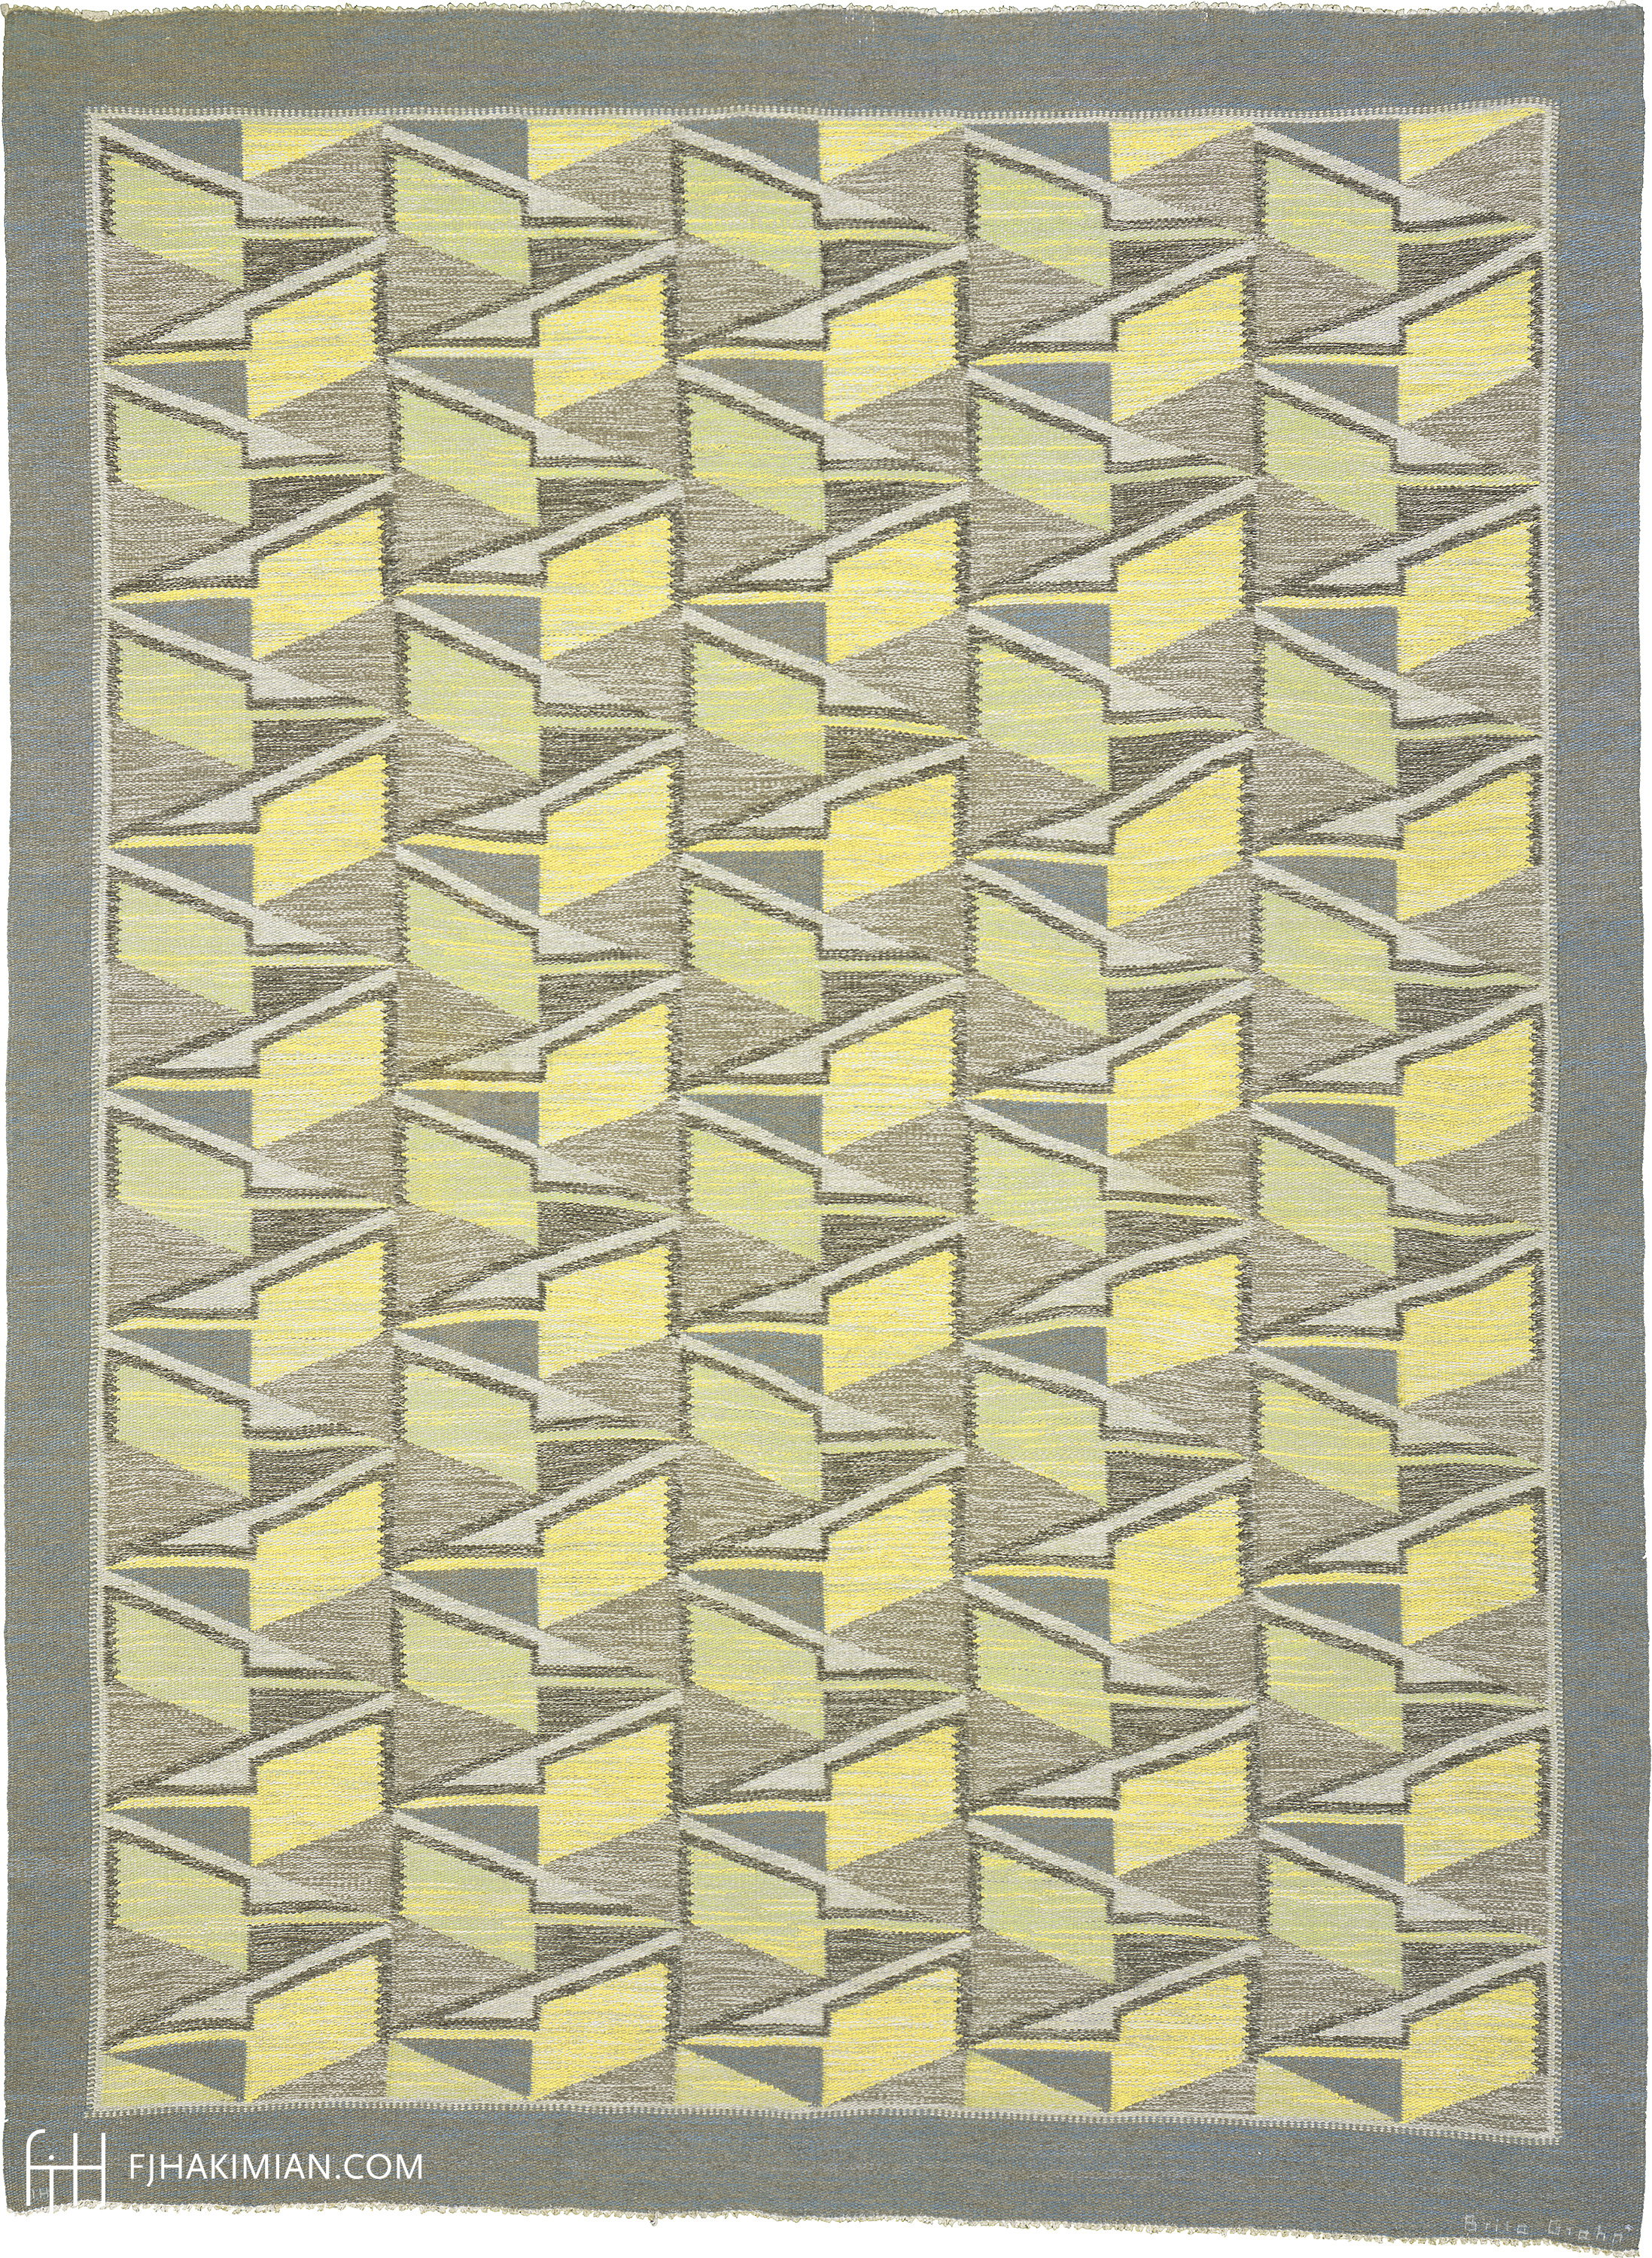 Swedish Flat Wave rug 02925 | FJ Hakimian